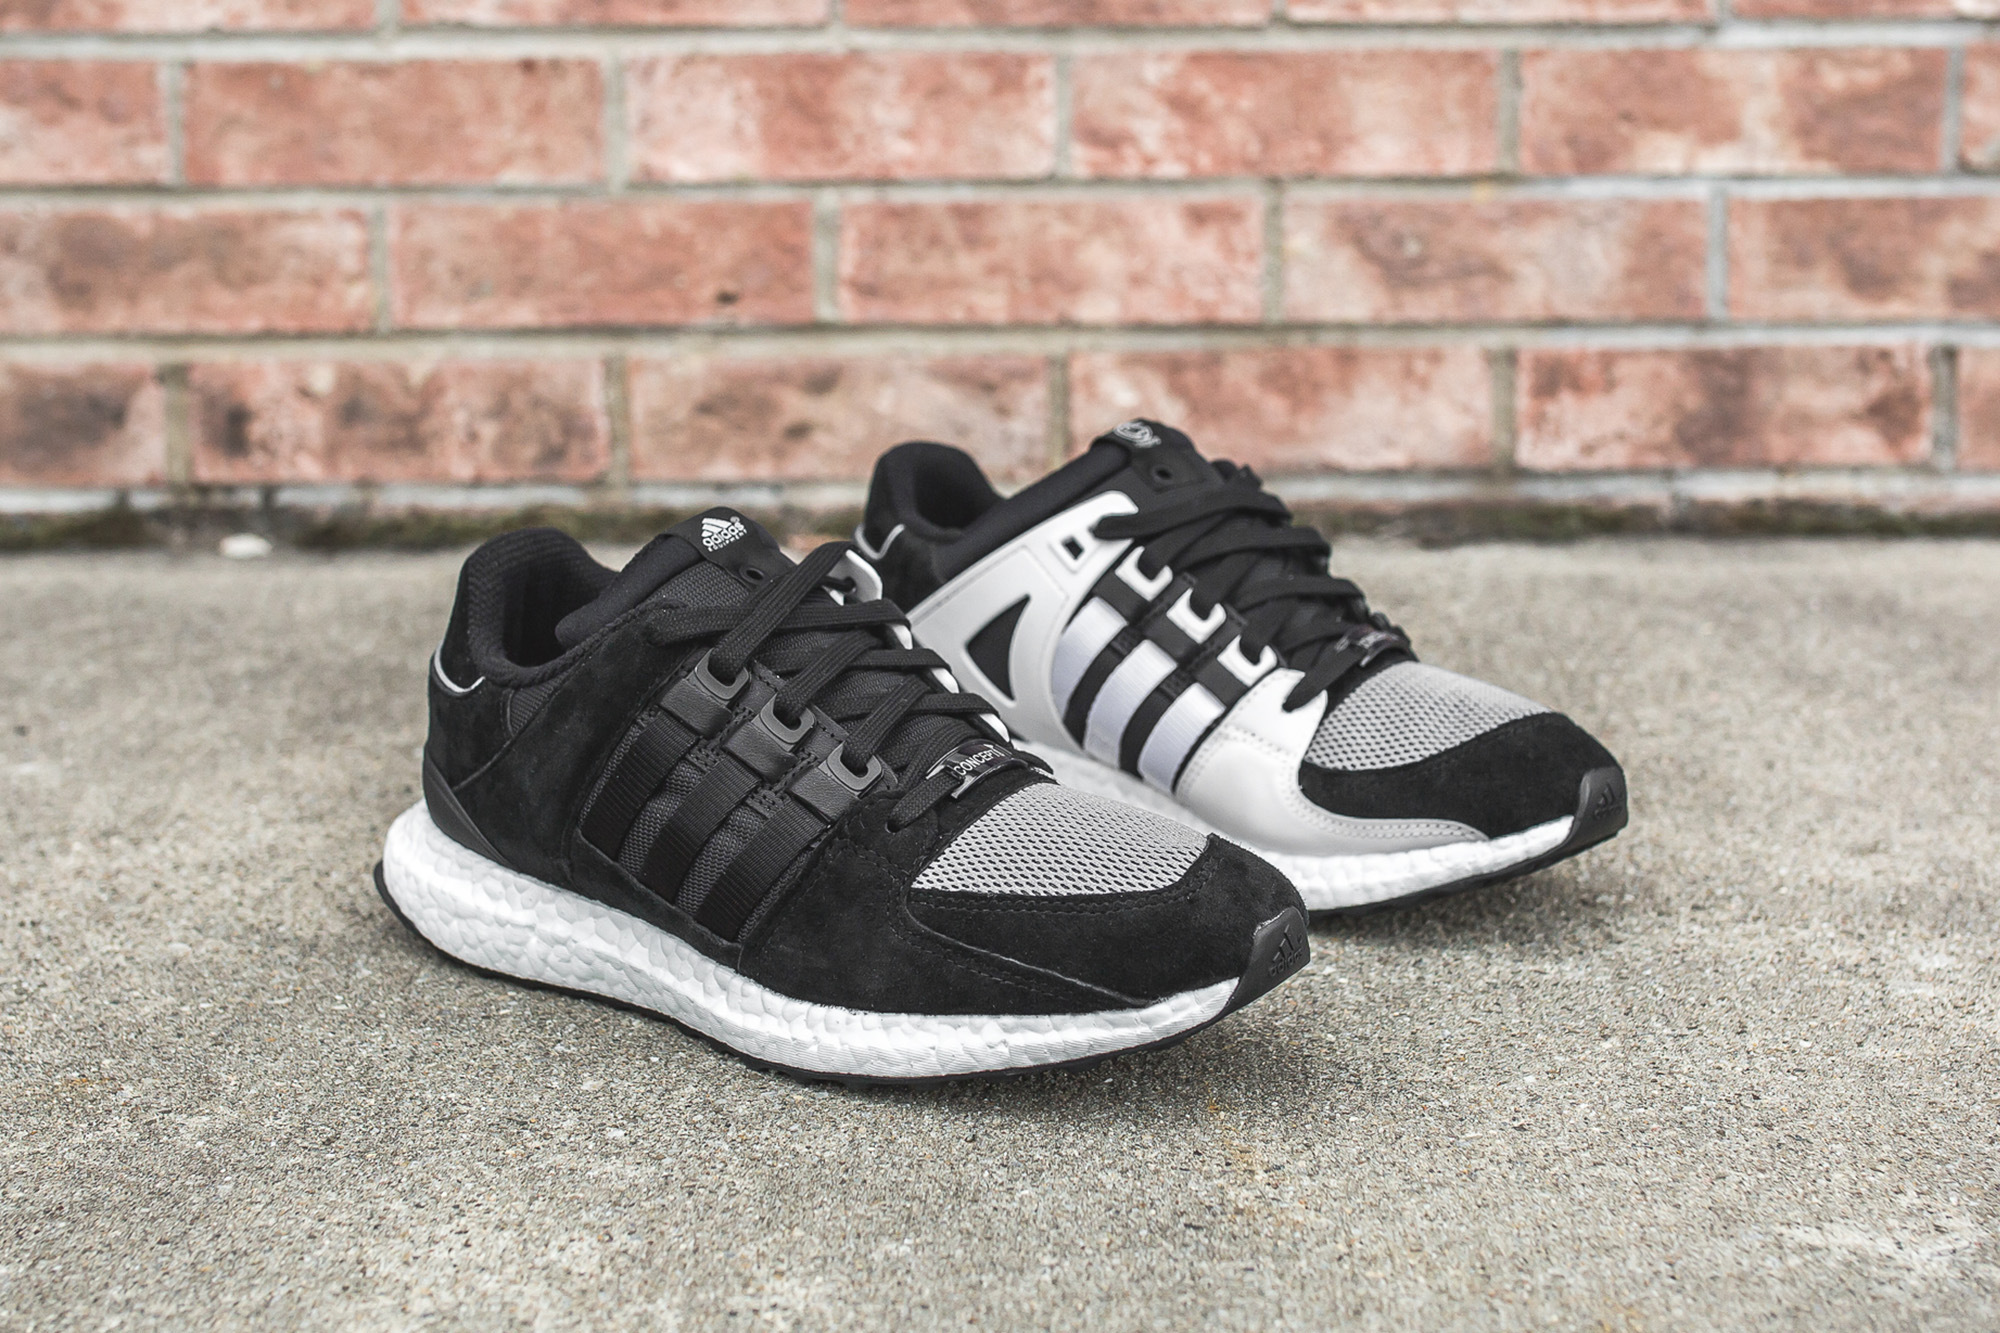 cheap for discount 619ee 440b5 ... germany adidas consortium x concepts eqt support 9316 8 62b09 48604